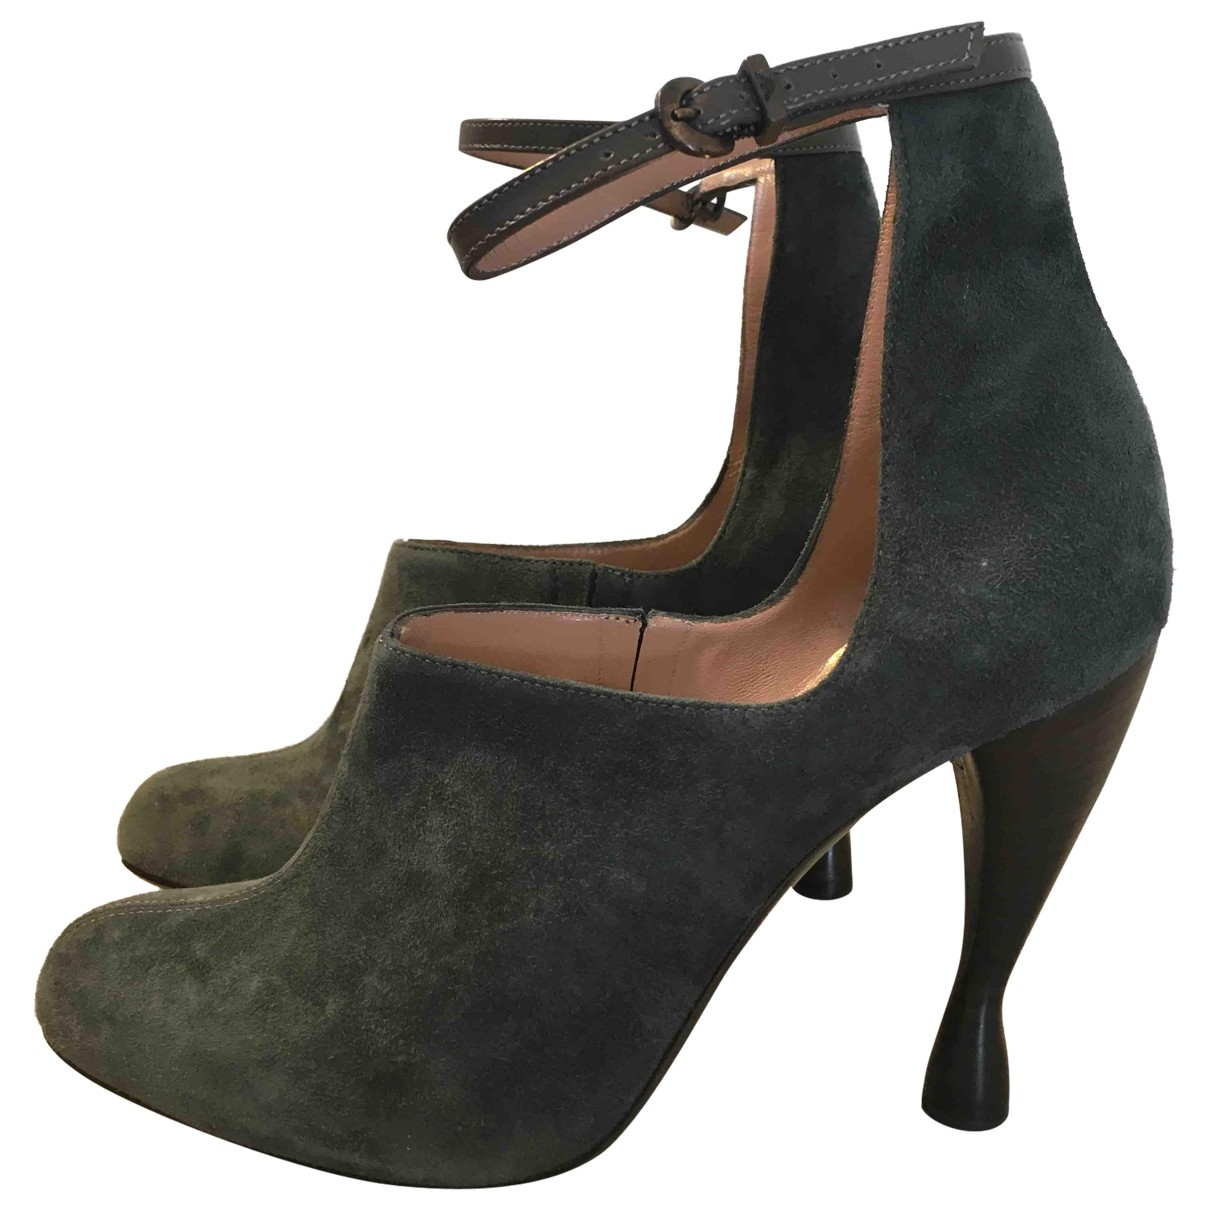 Emporio Armani \N Grey Suede Ankle boots for Women 36 IT